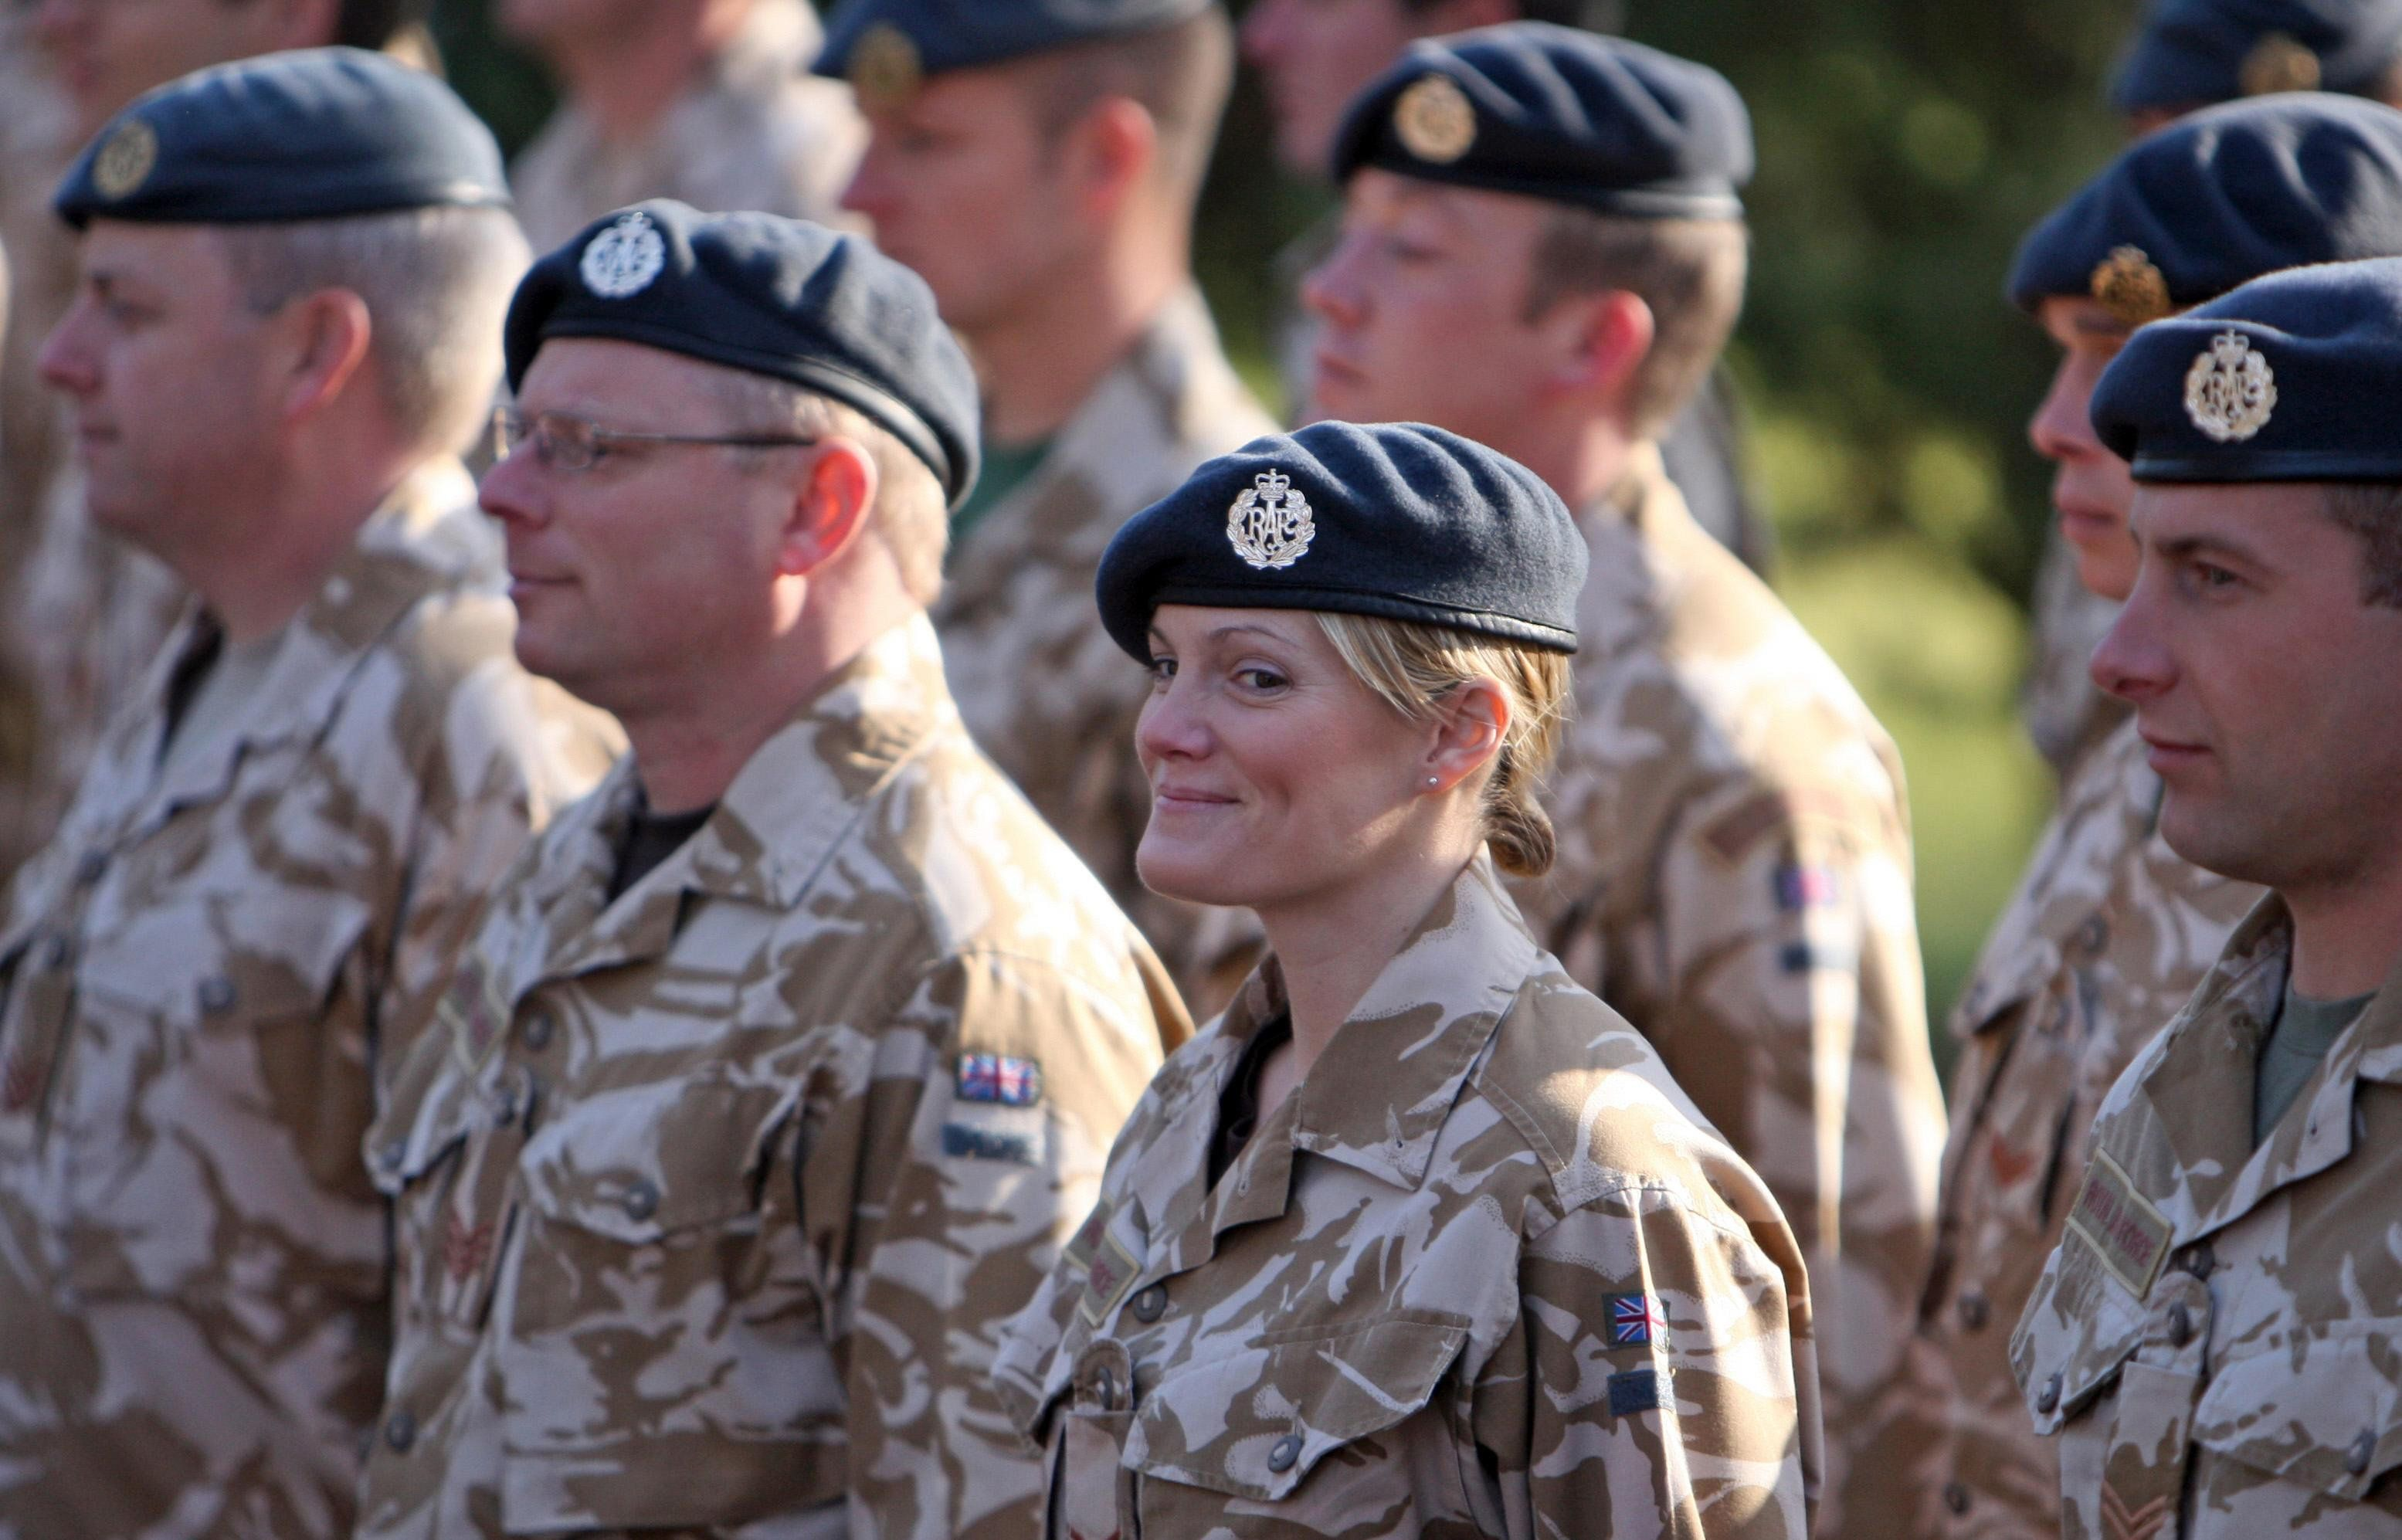 Women can now serve in 'close combat'